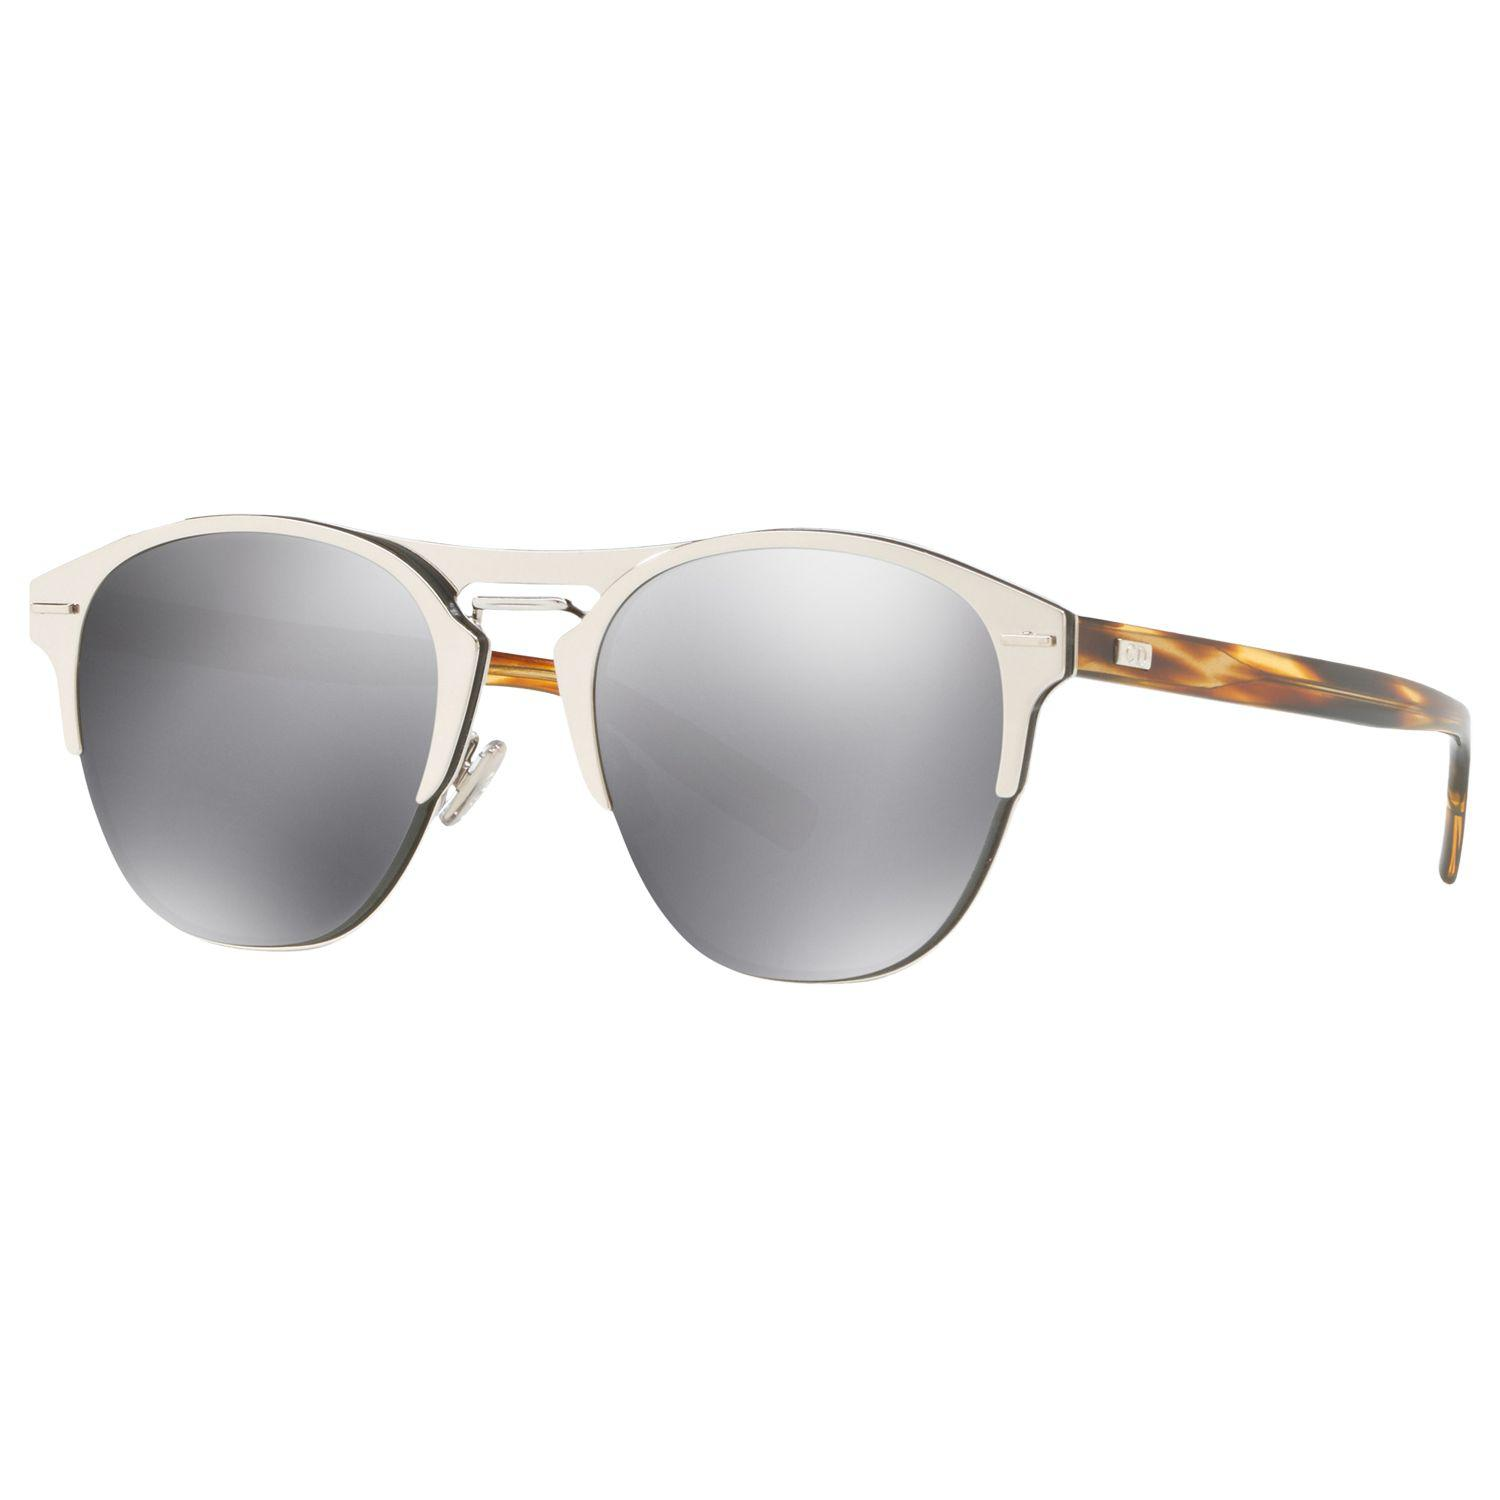 03eb7355405be Dior Chrono Oval Sunglasses in Gray for Men - Lyst